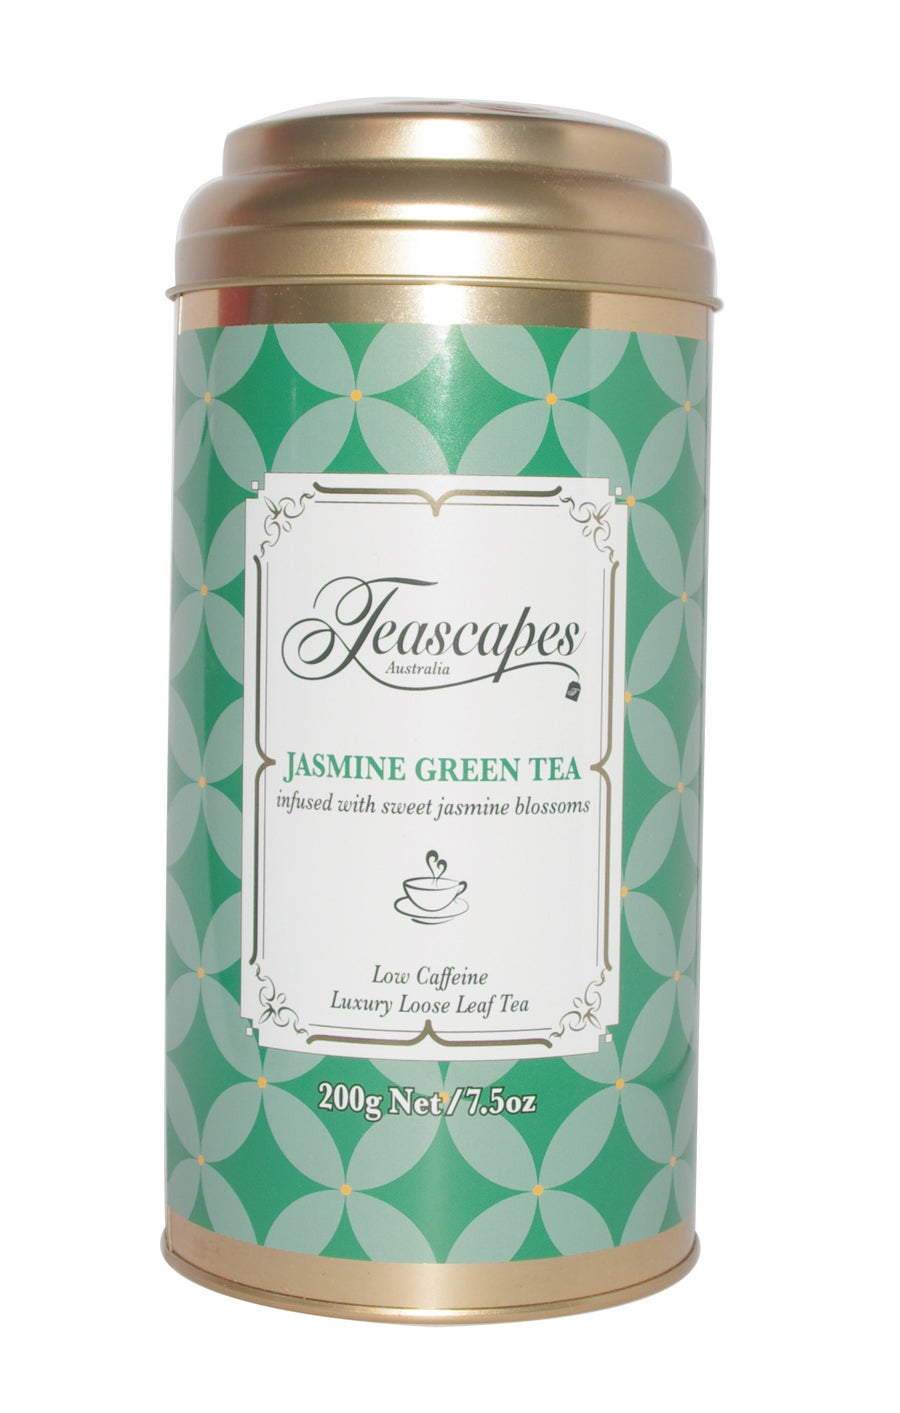 Image of Jasmine Green Tea, Luxury Loose Leaf